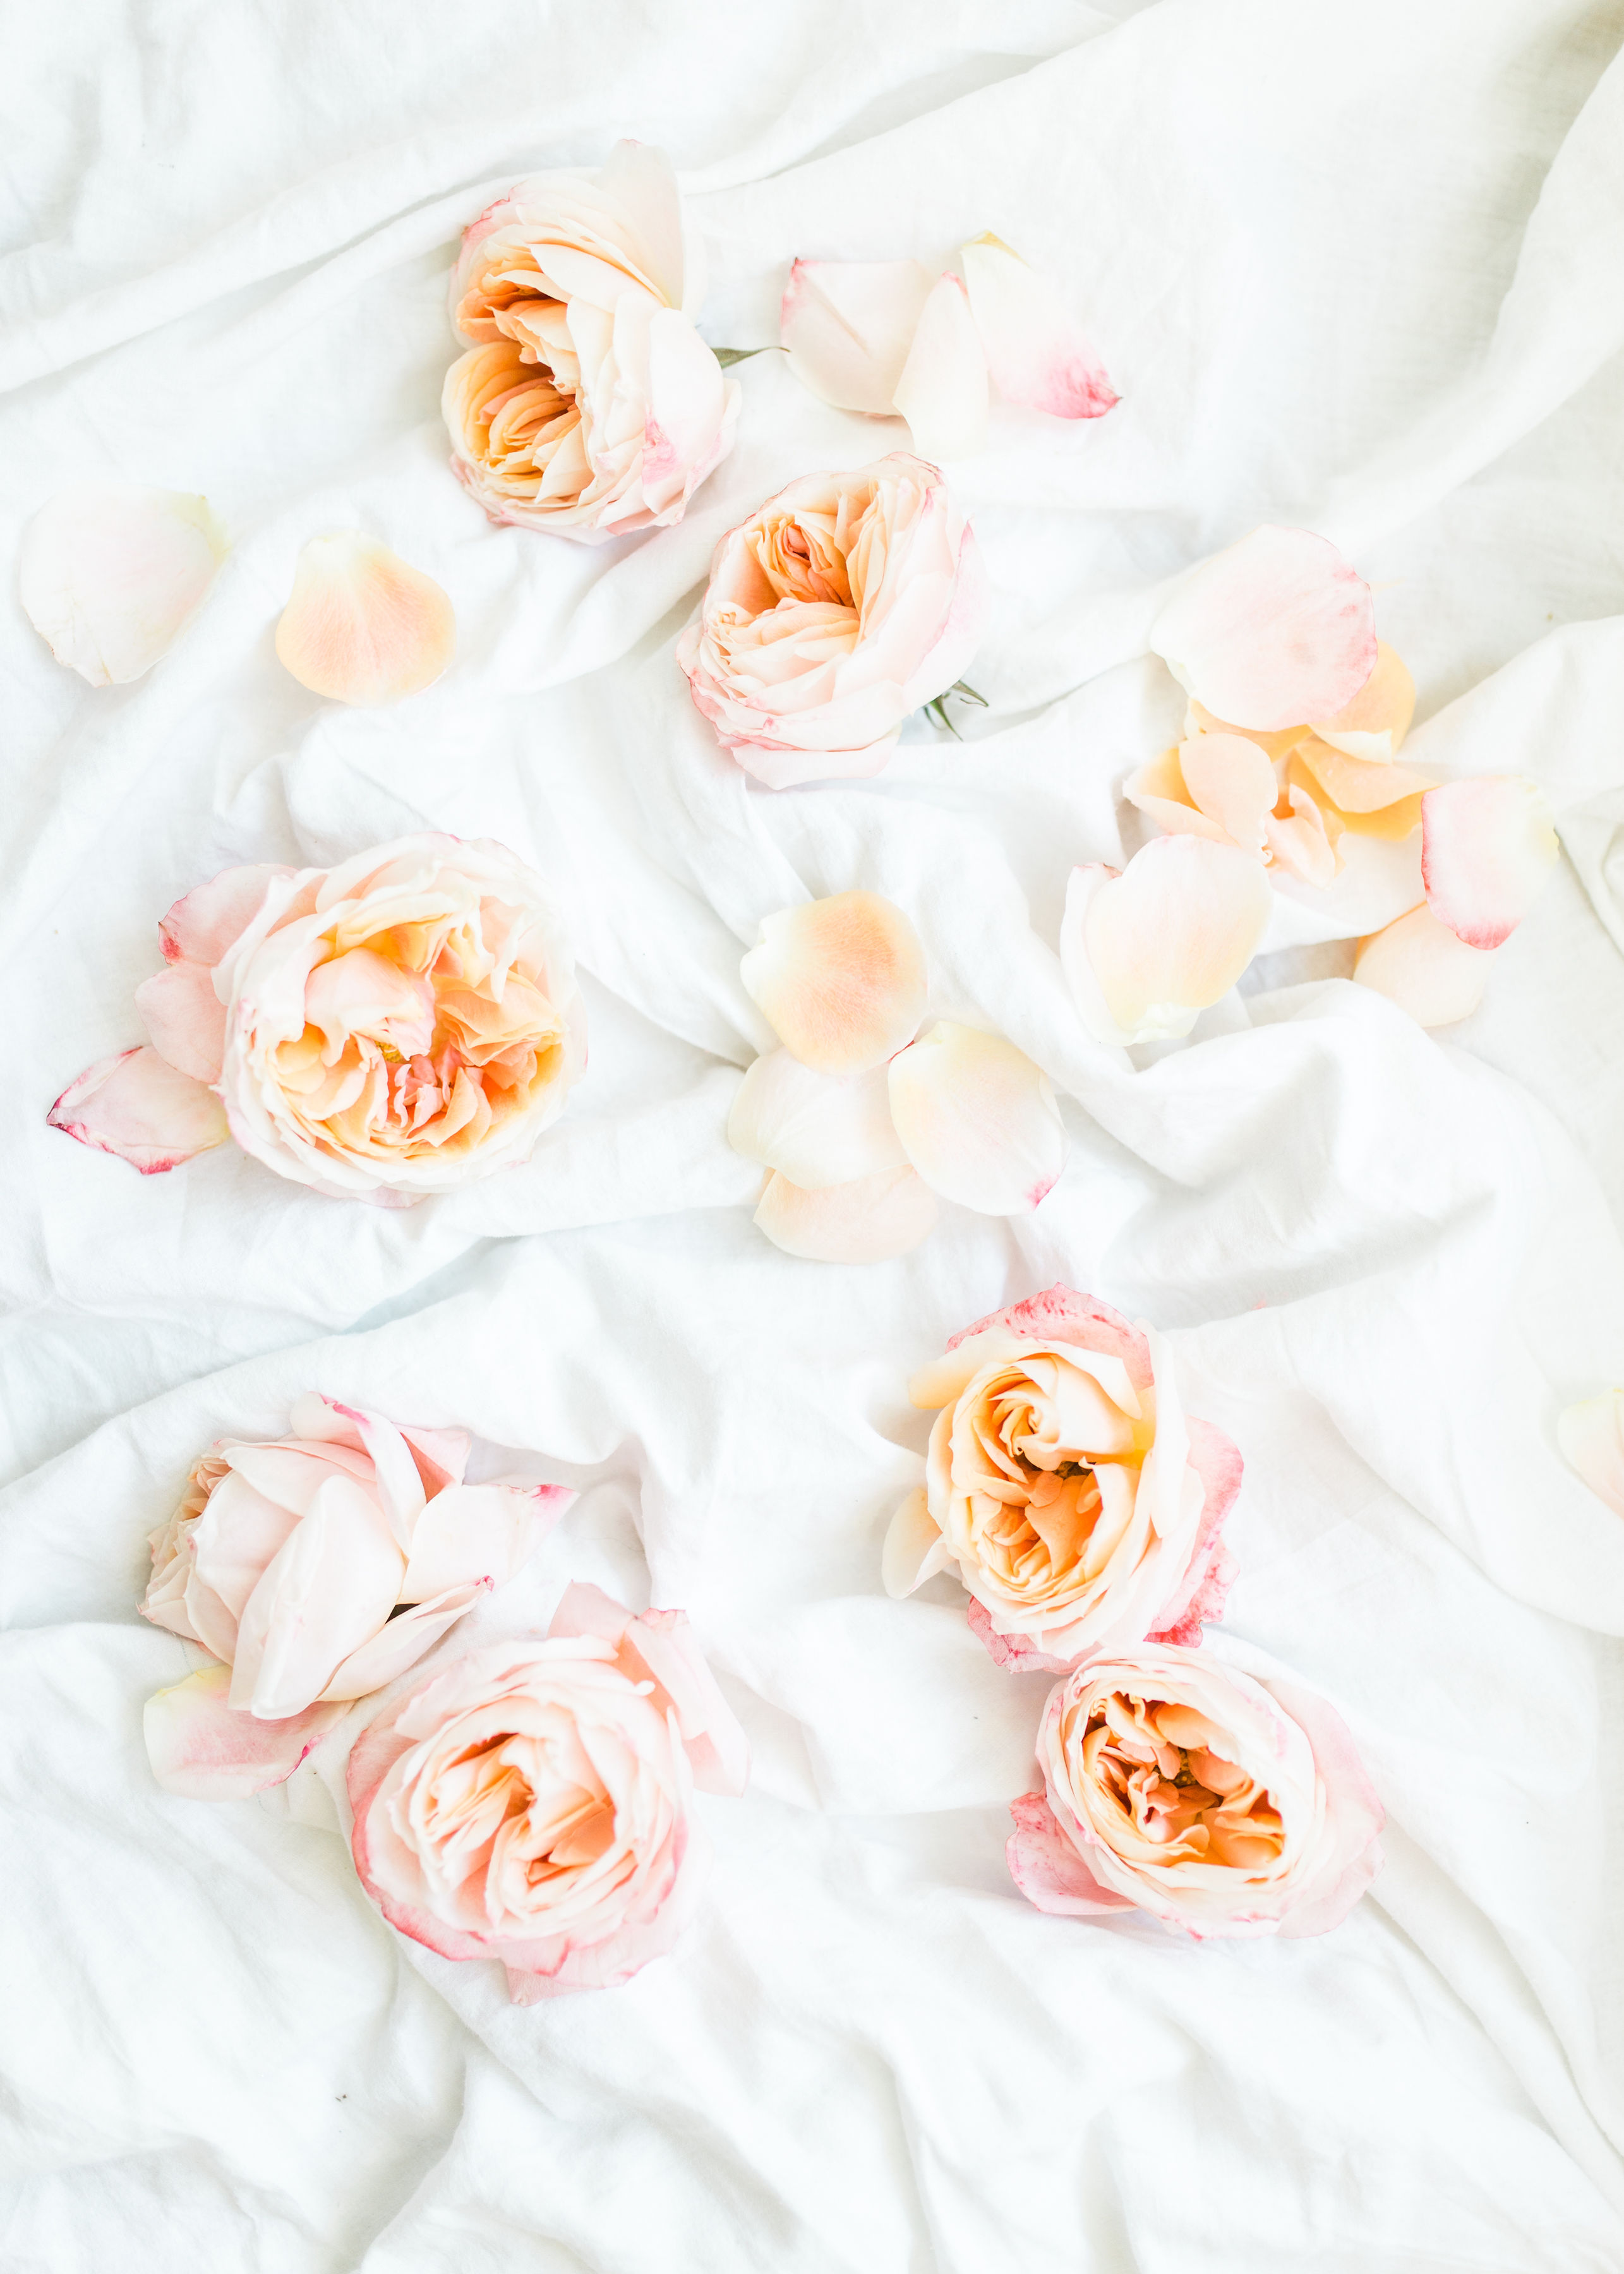 Lifestyle blogger Lexi of Glitter, Inc. shares a few little love notes to the things she loved most this week, including leftover roses from Valentines Day, weekend plans, and so much more. | Click through for the details. | glitterinc.com | @glitterinc